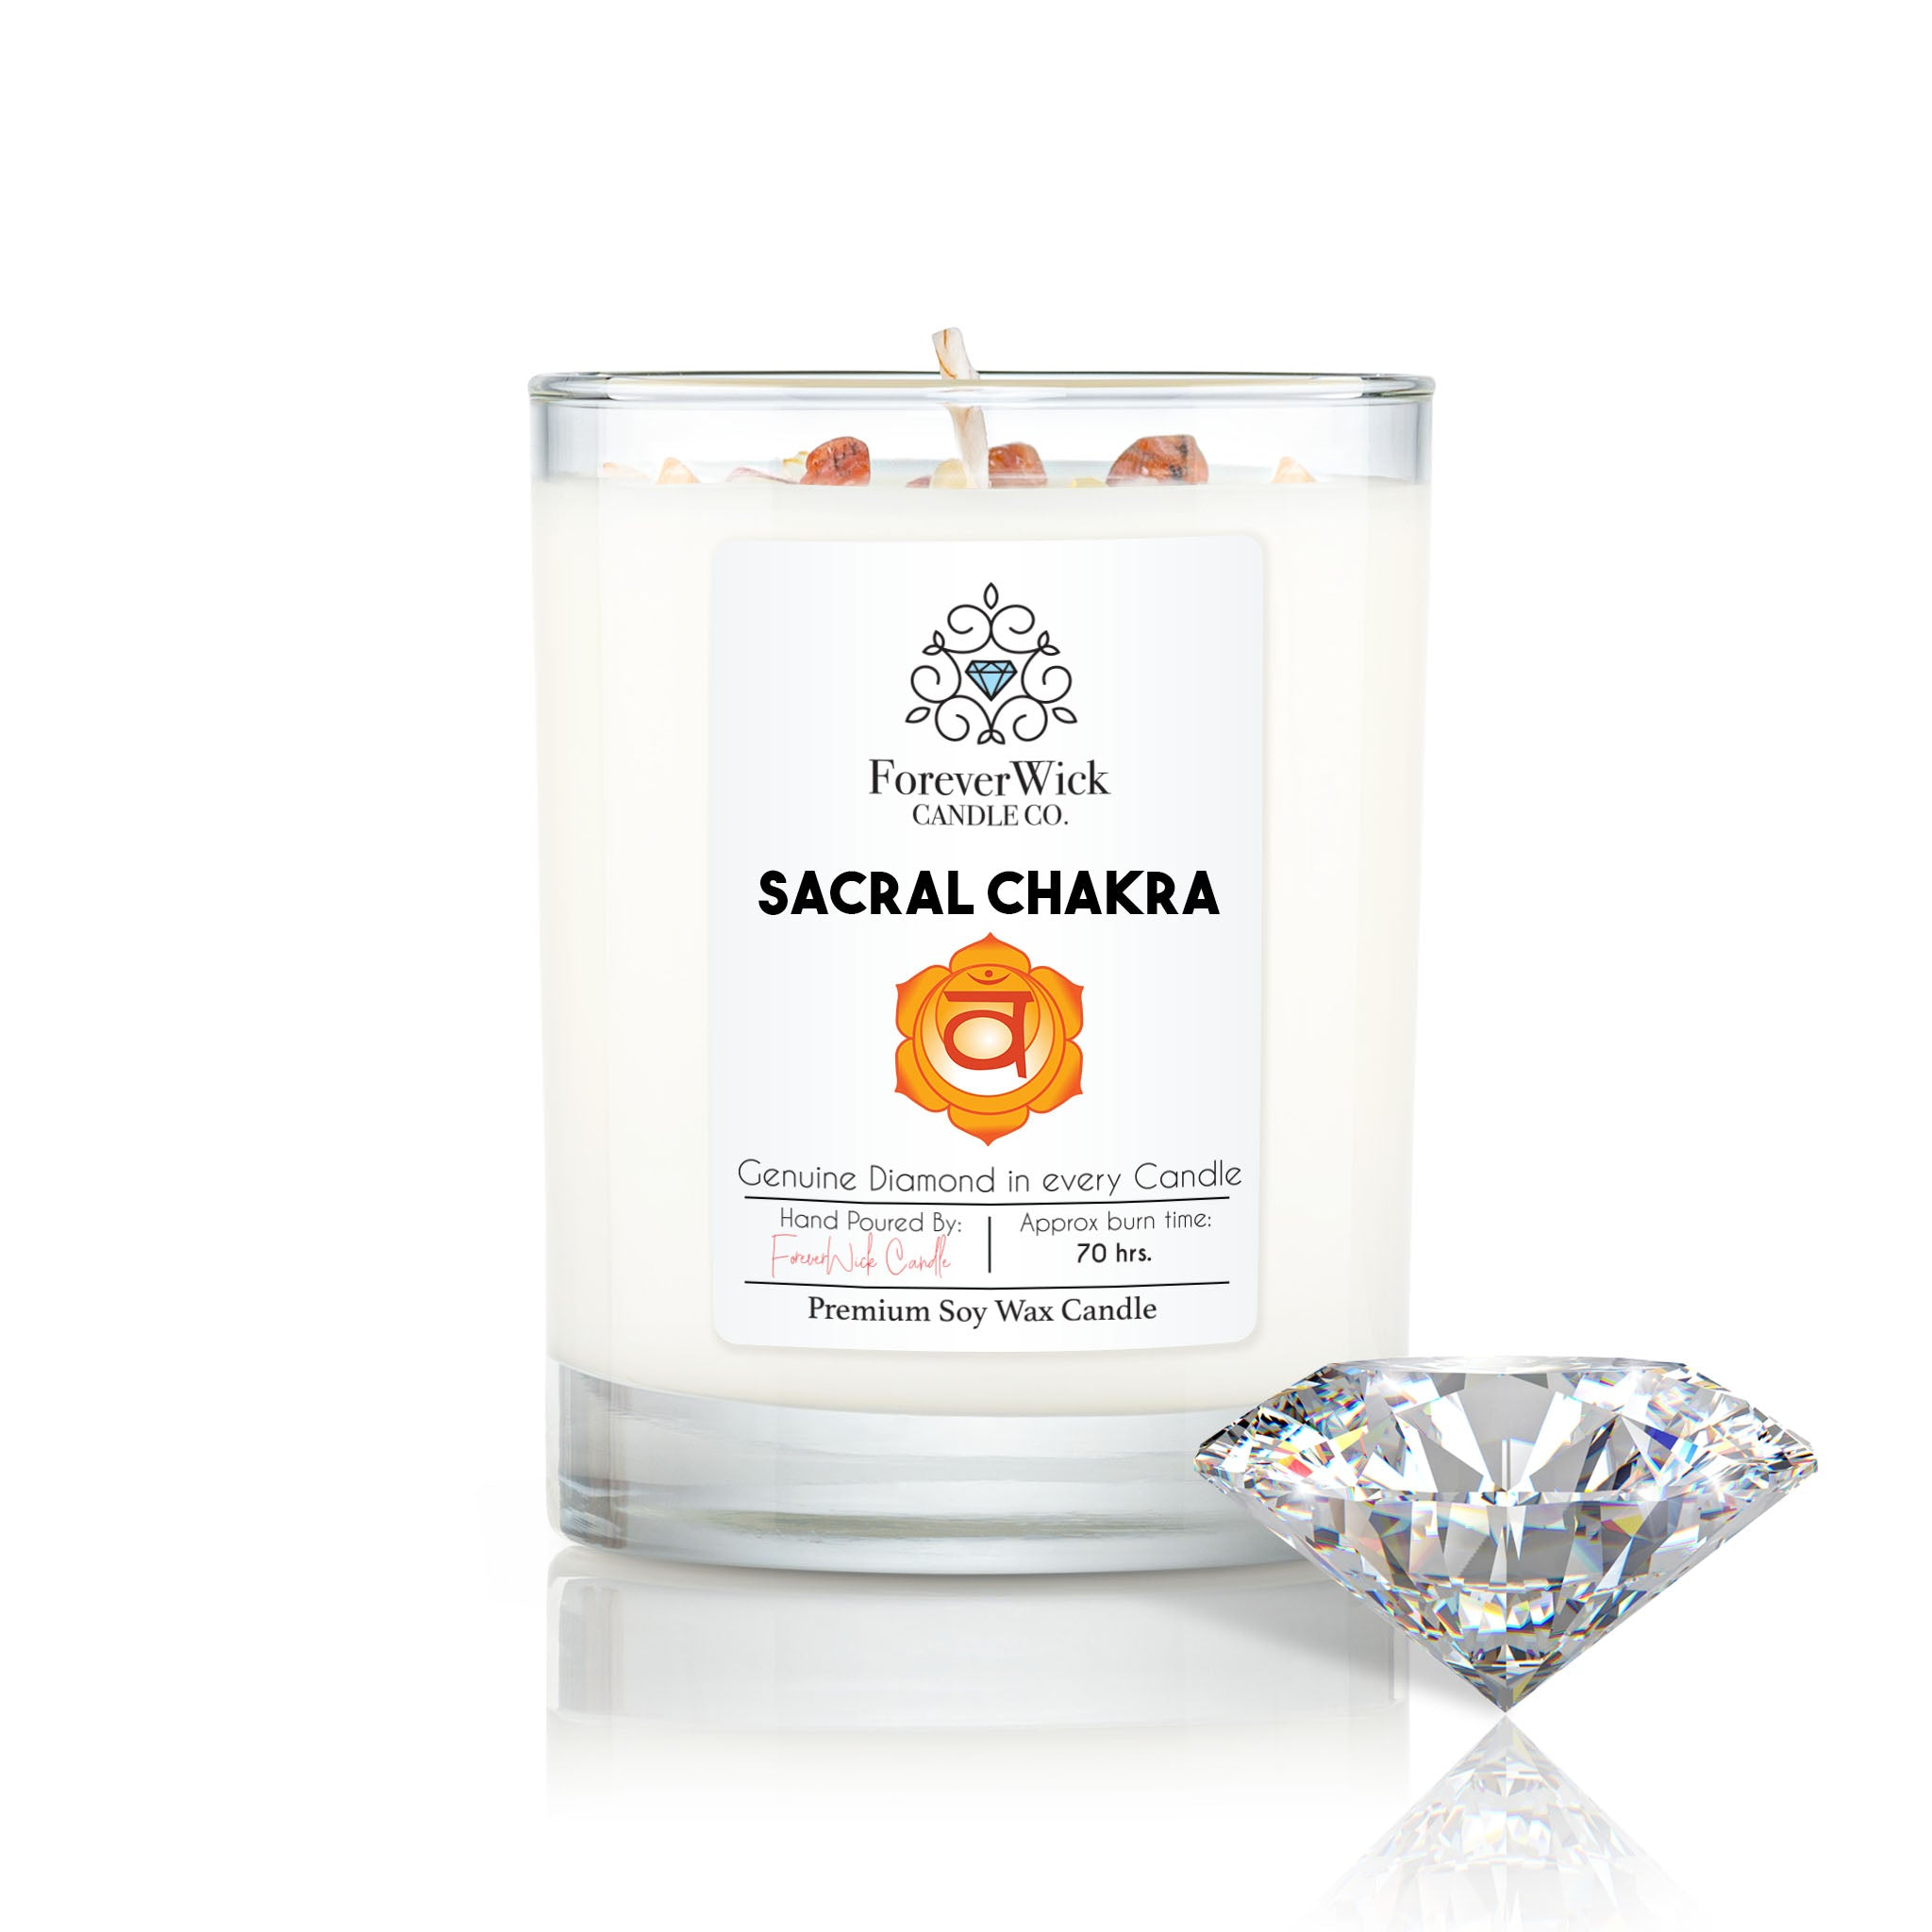 Sacral Chakra - Crystal & Diamond Candle